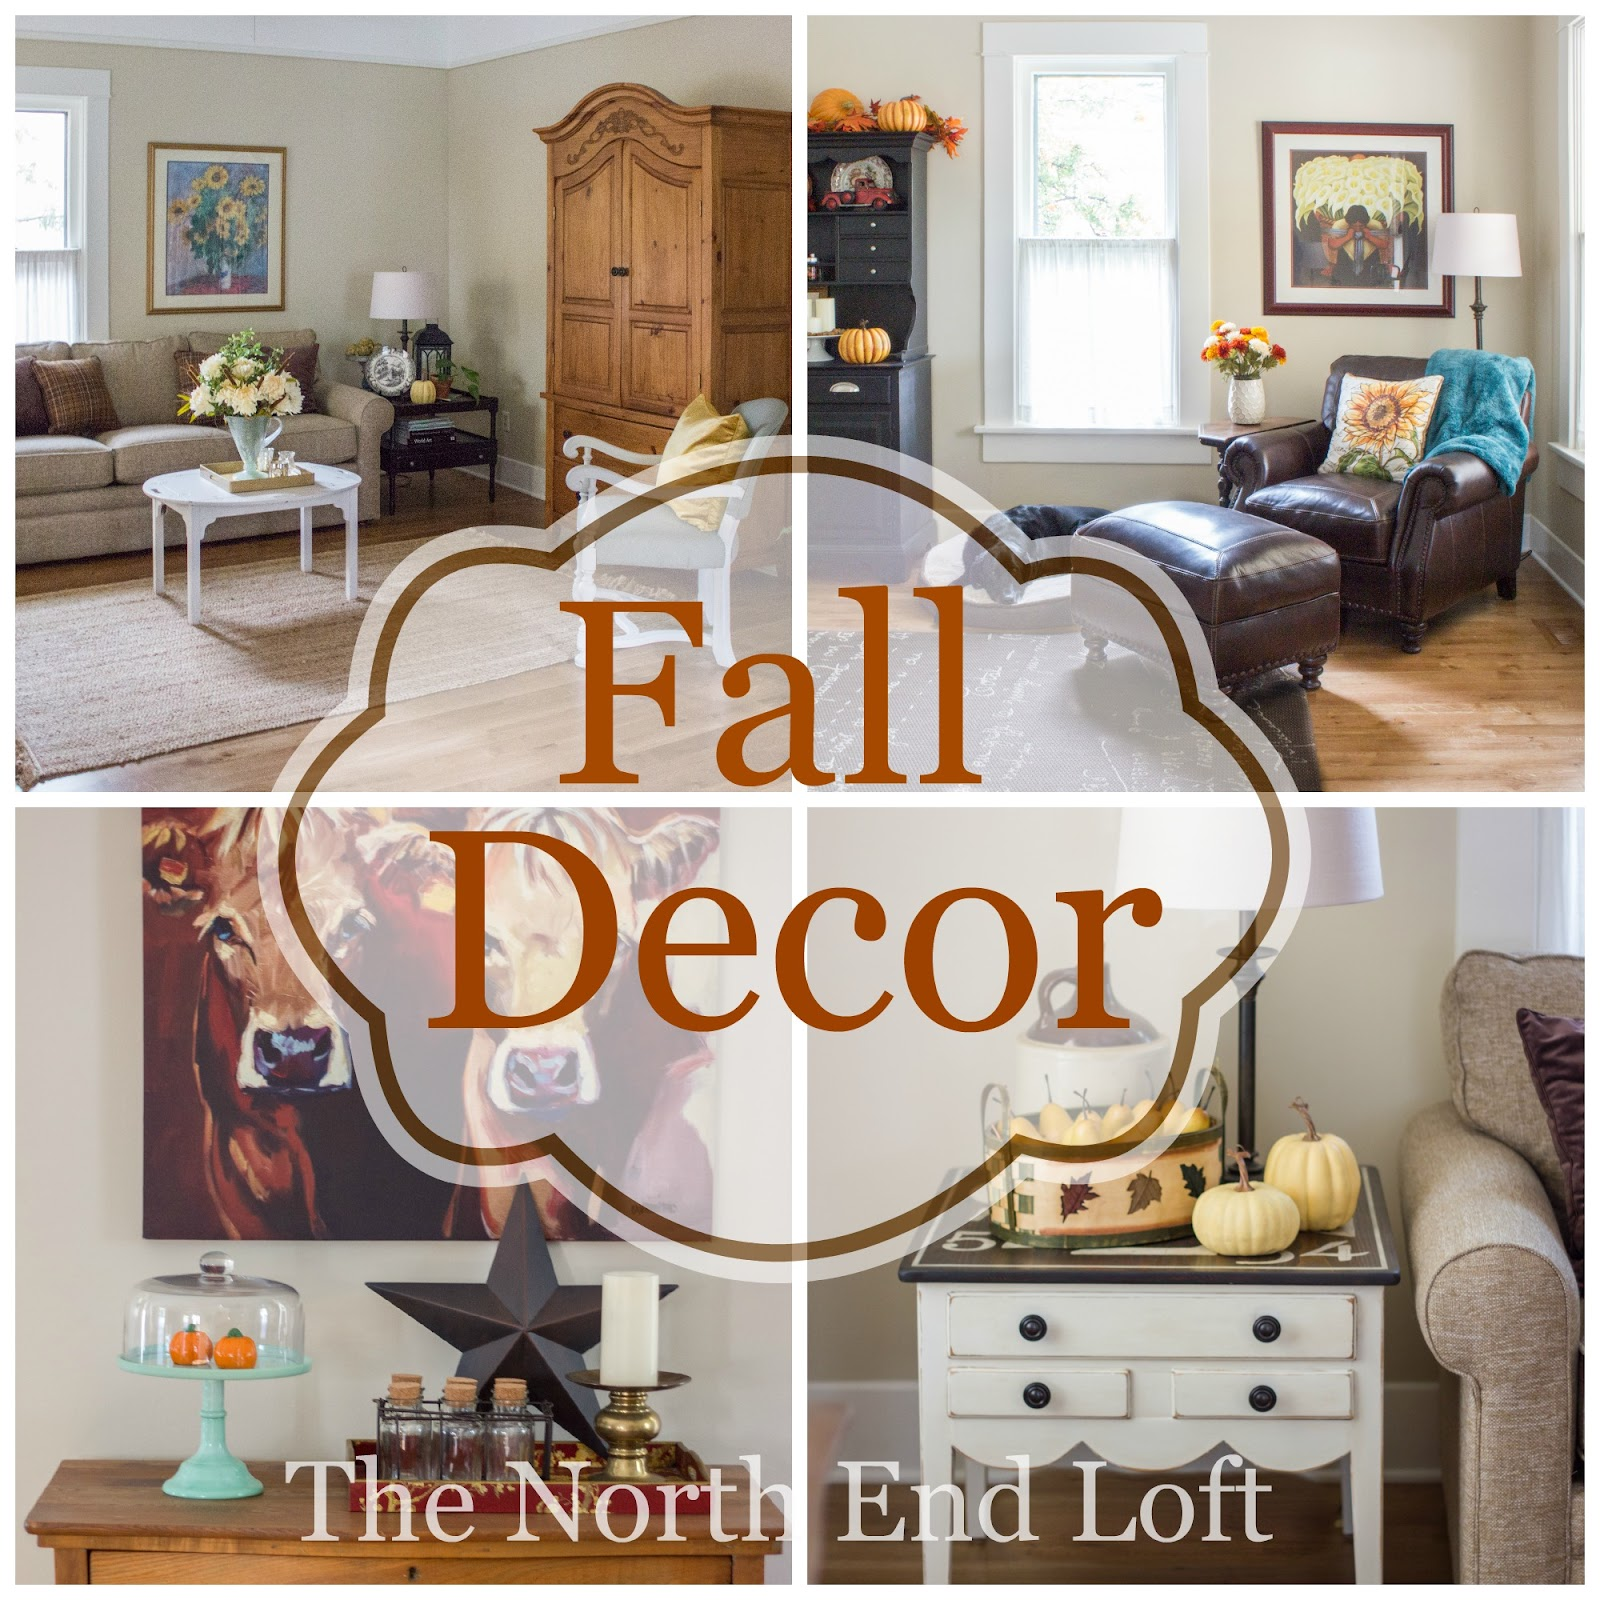 The North End Loft: Fall Living Room 2015